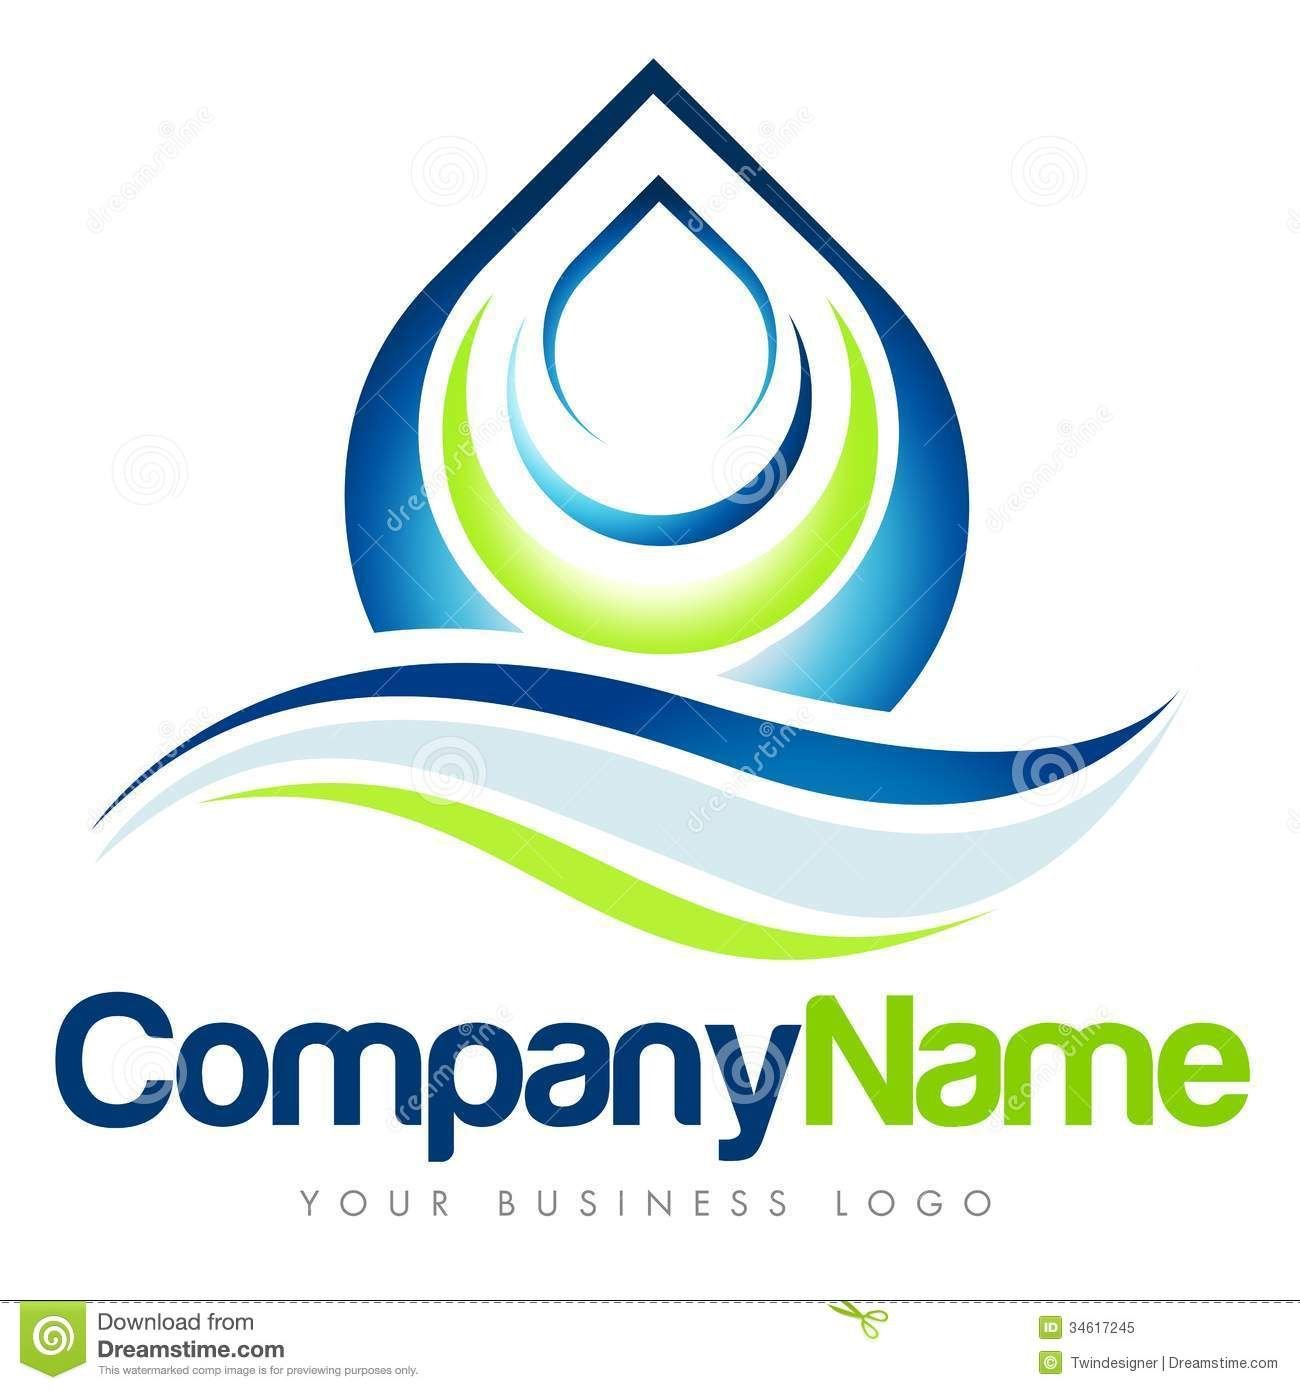 Business logo emasdvrlistscom bad logos pinterest Business logo design company